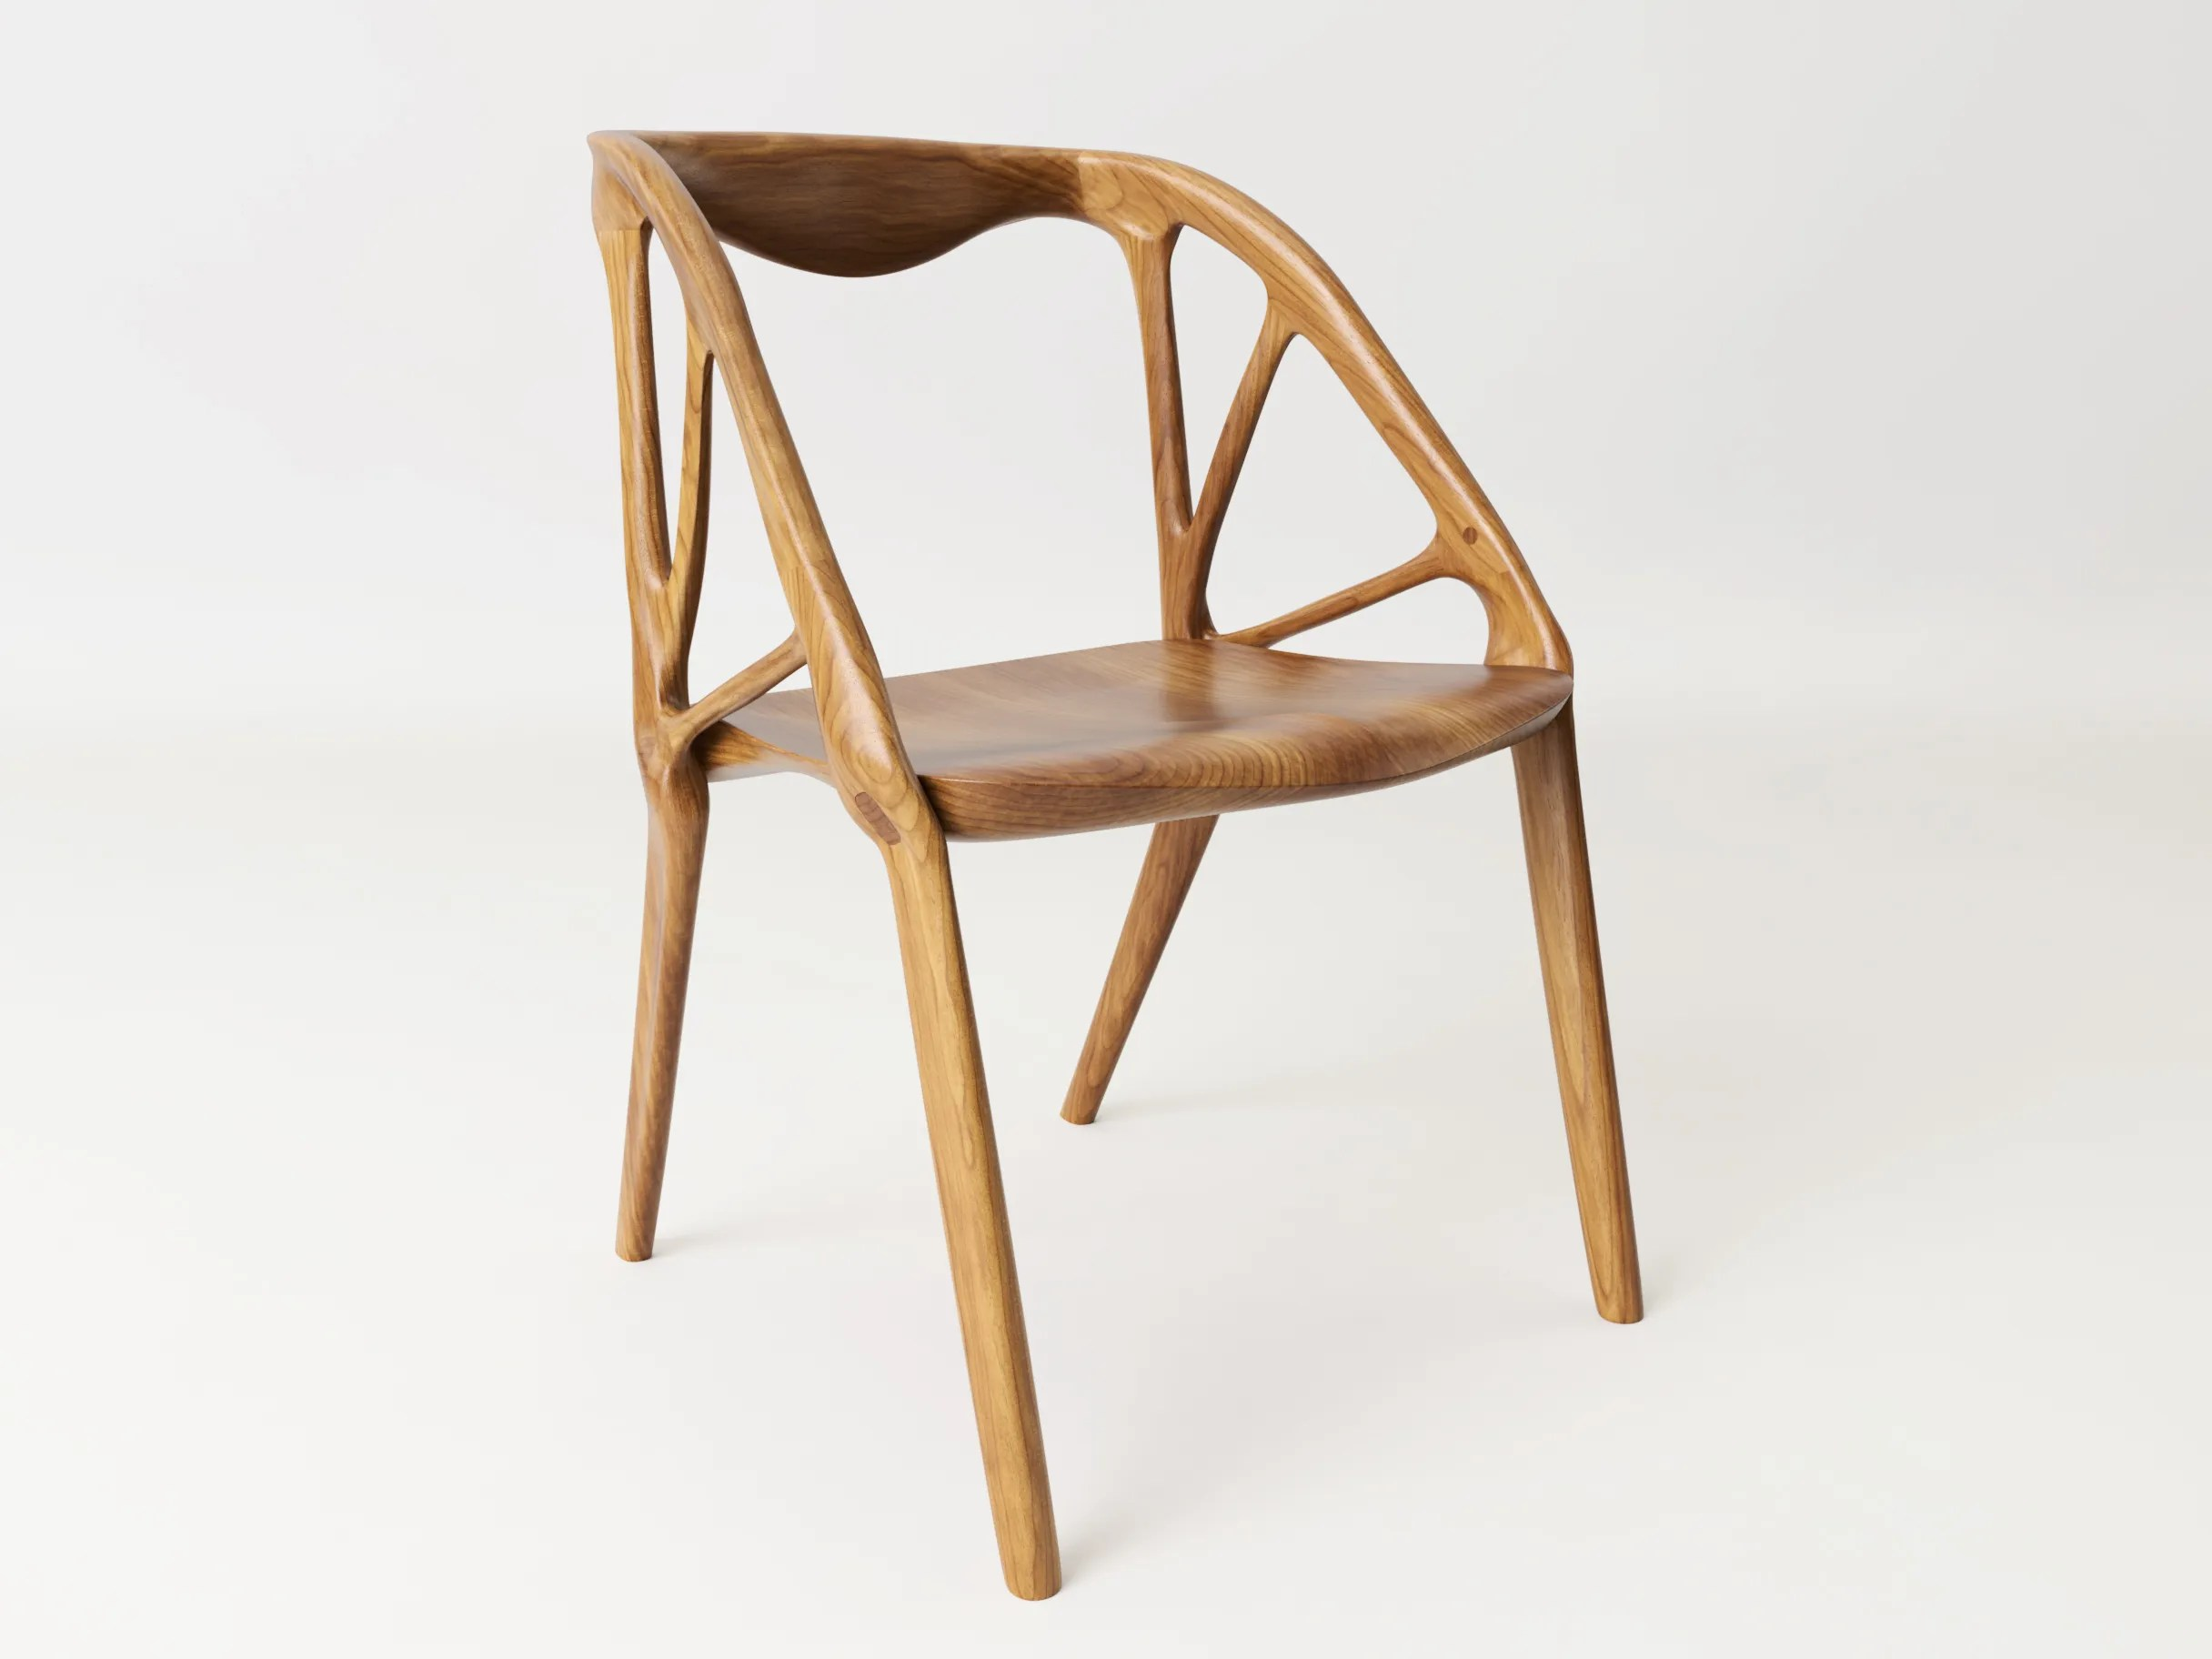 So Algorithms Are Designing Chairs Now